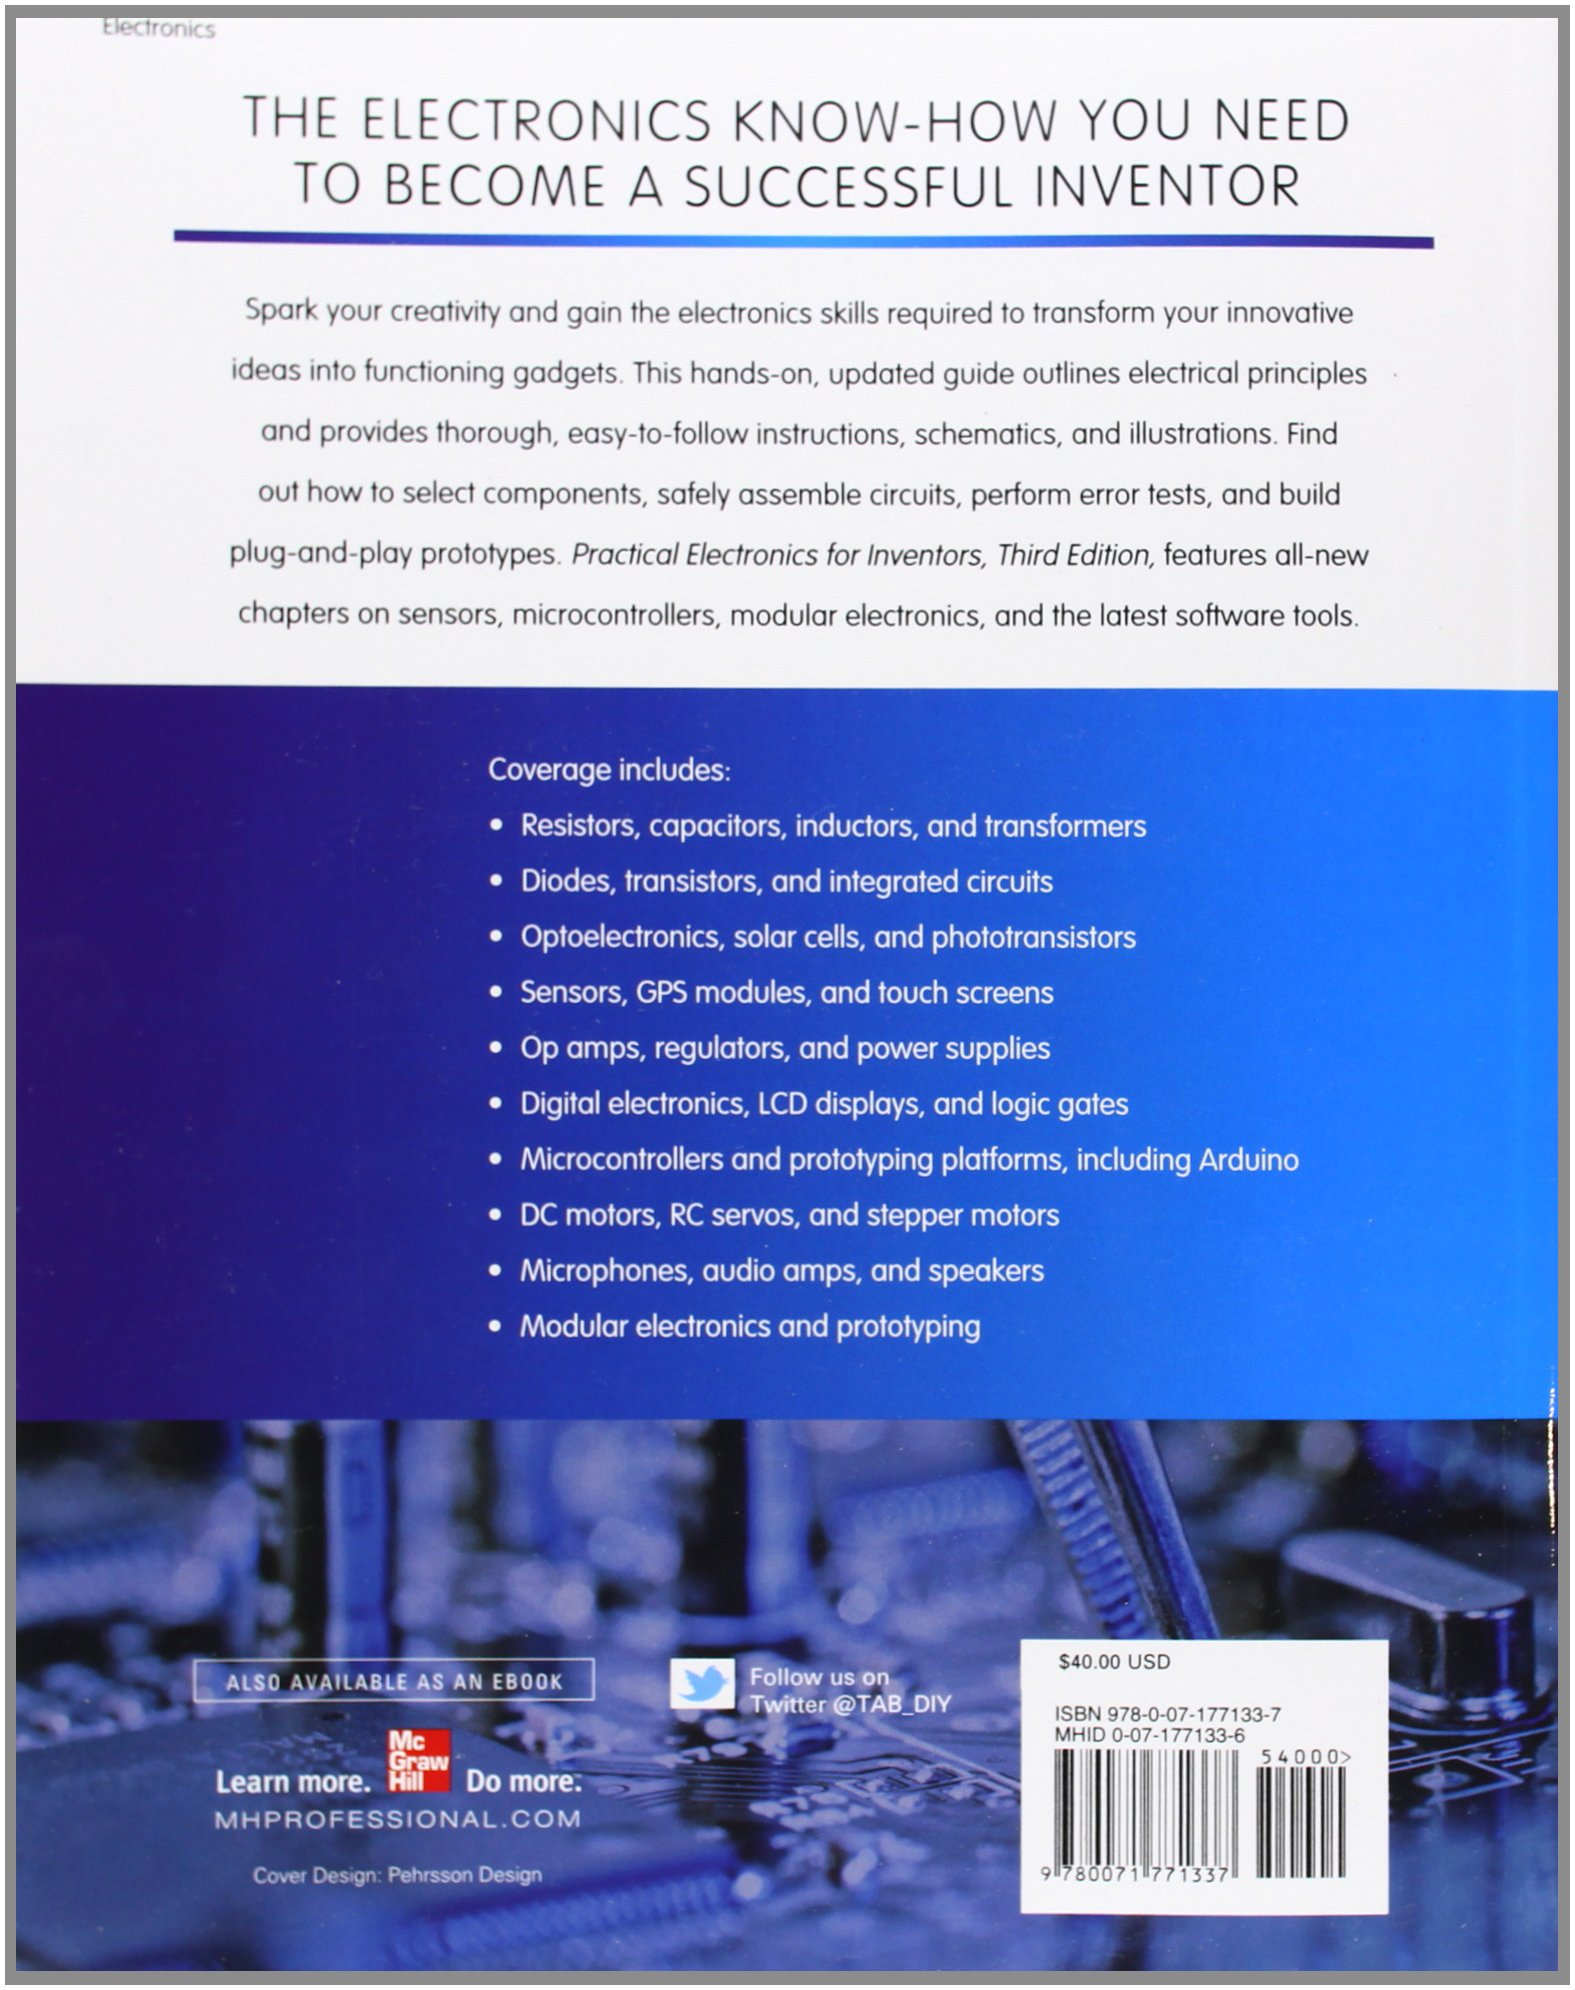 Pdf practical electronics for inventors, third edition.